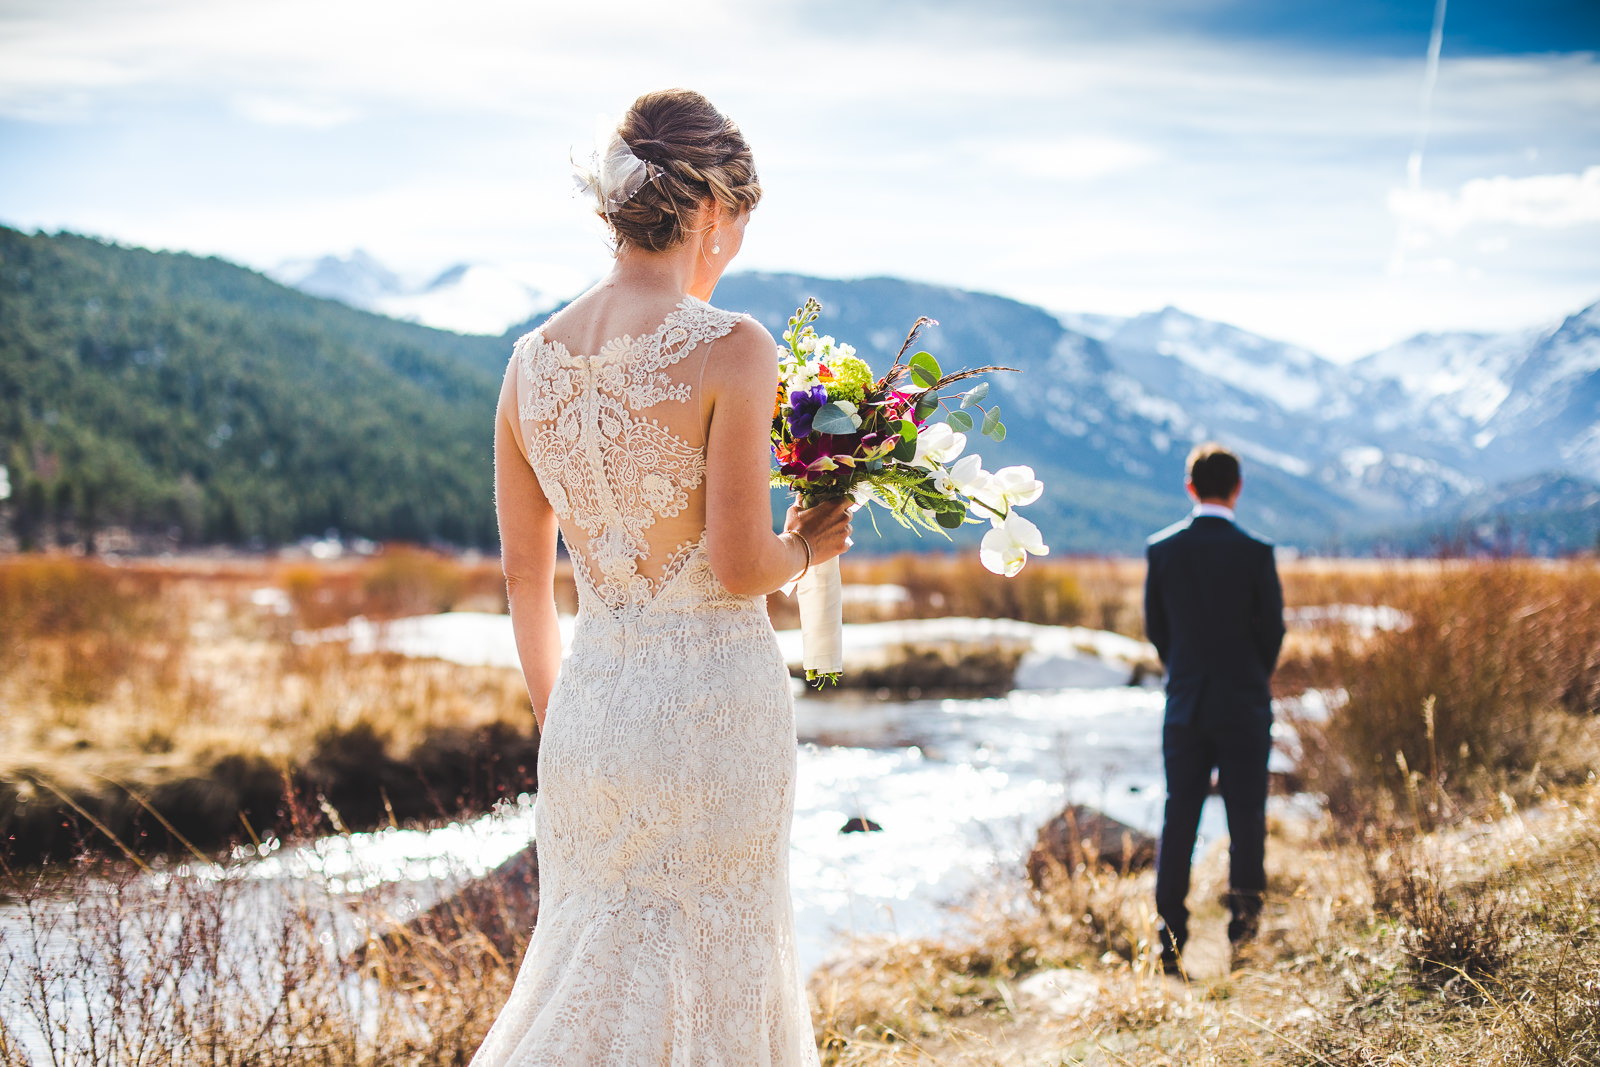 Bride approaching groom from behind for first-look in RMNP